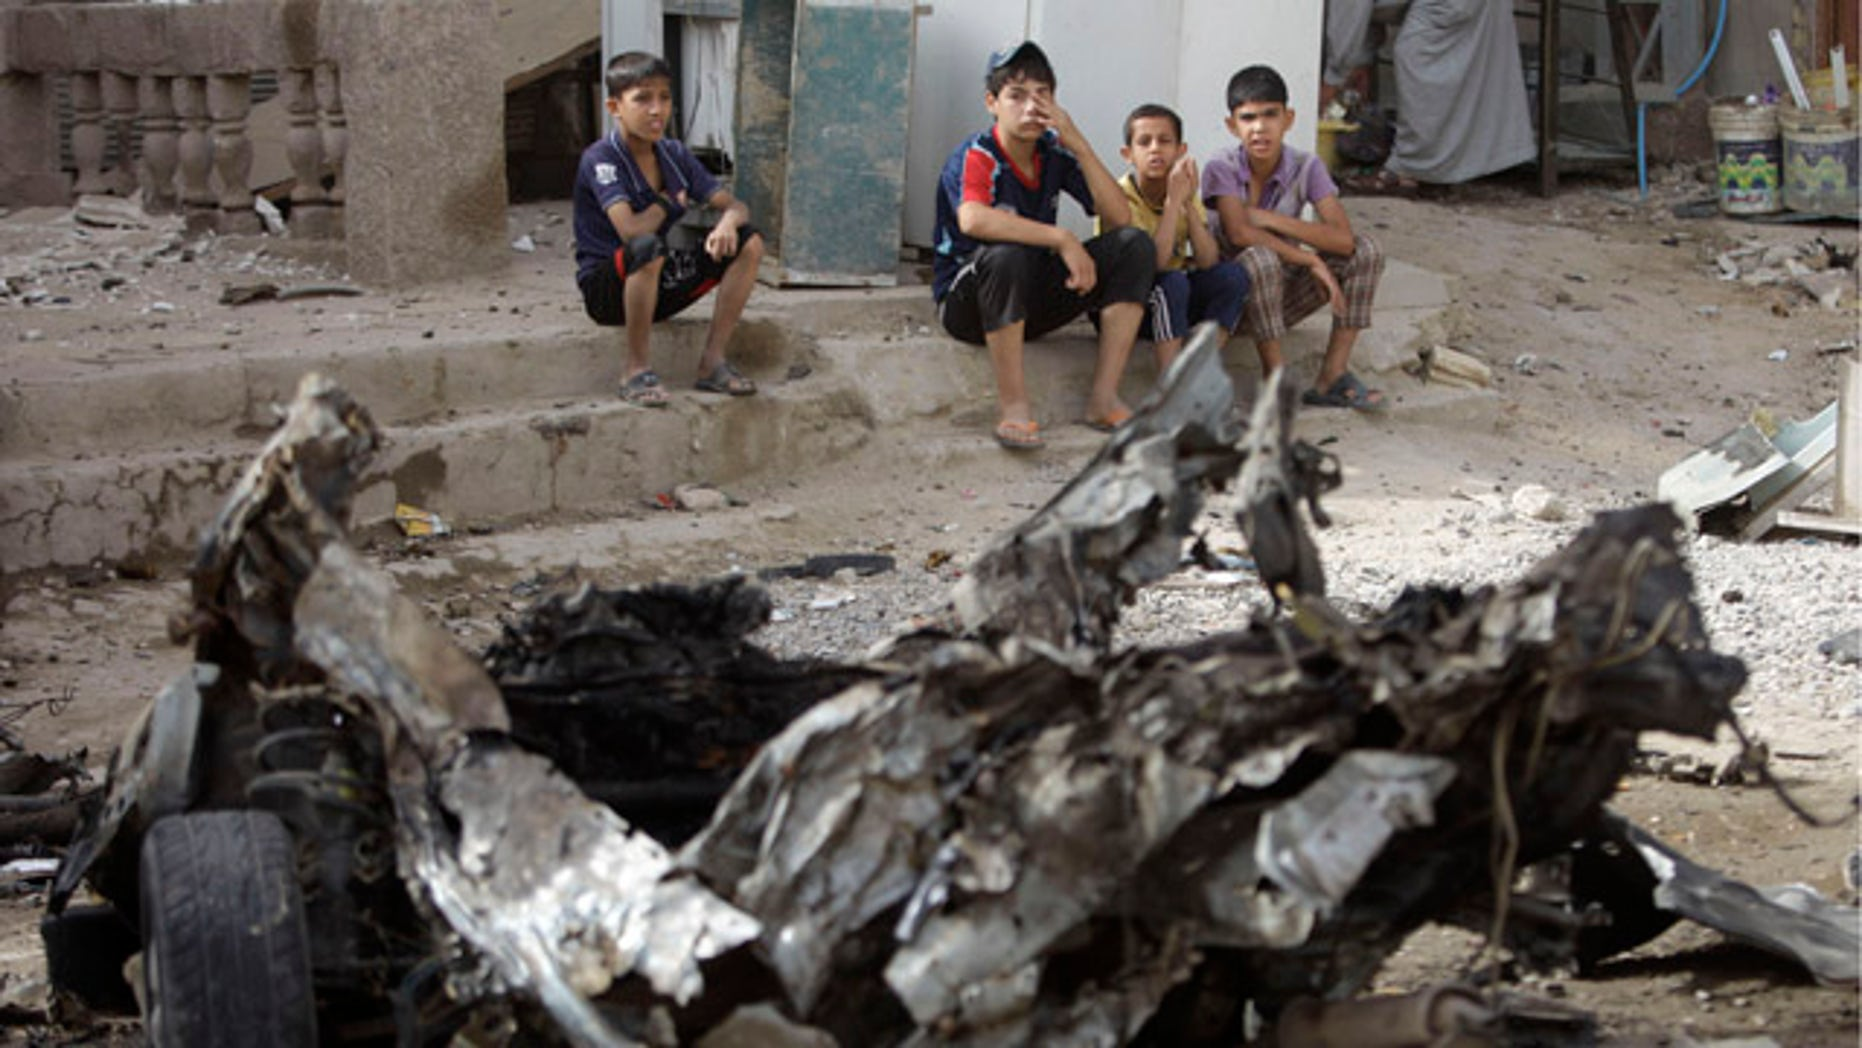 May 22: Boys sit near the scene of a car bomb attack in Baghdad, Iraq. A rapid-fire series of explosions in Baghdad while Iraqis were going to work on Sunday morning killed and wounded scores of people, police said